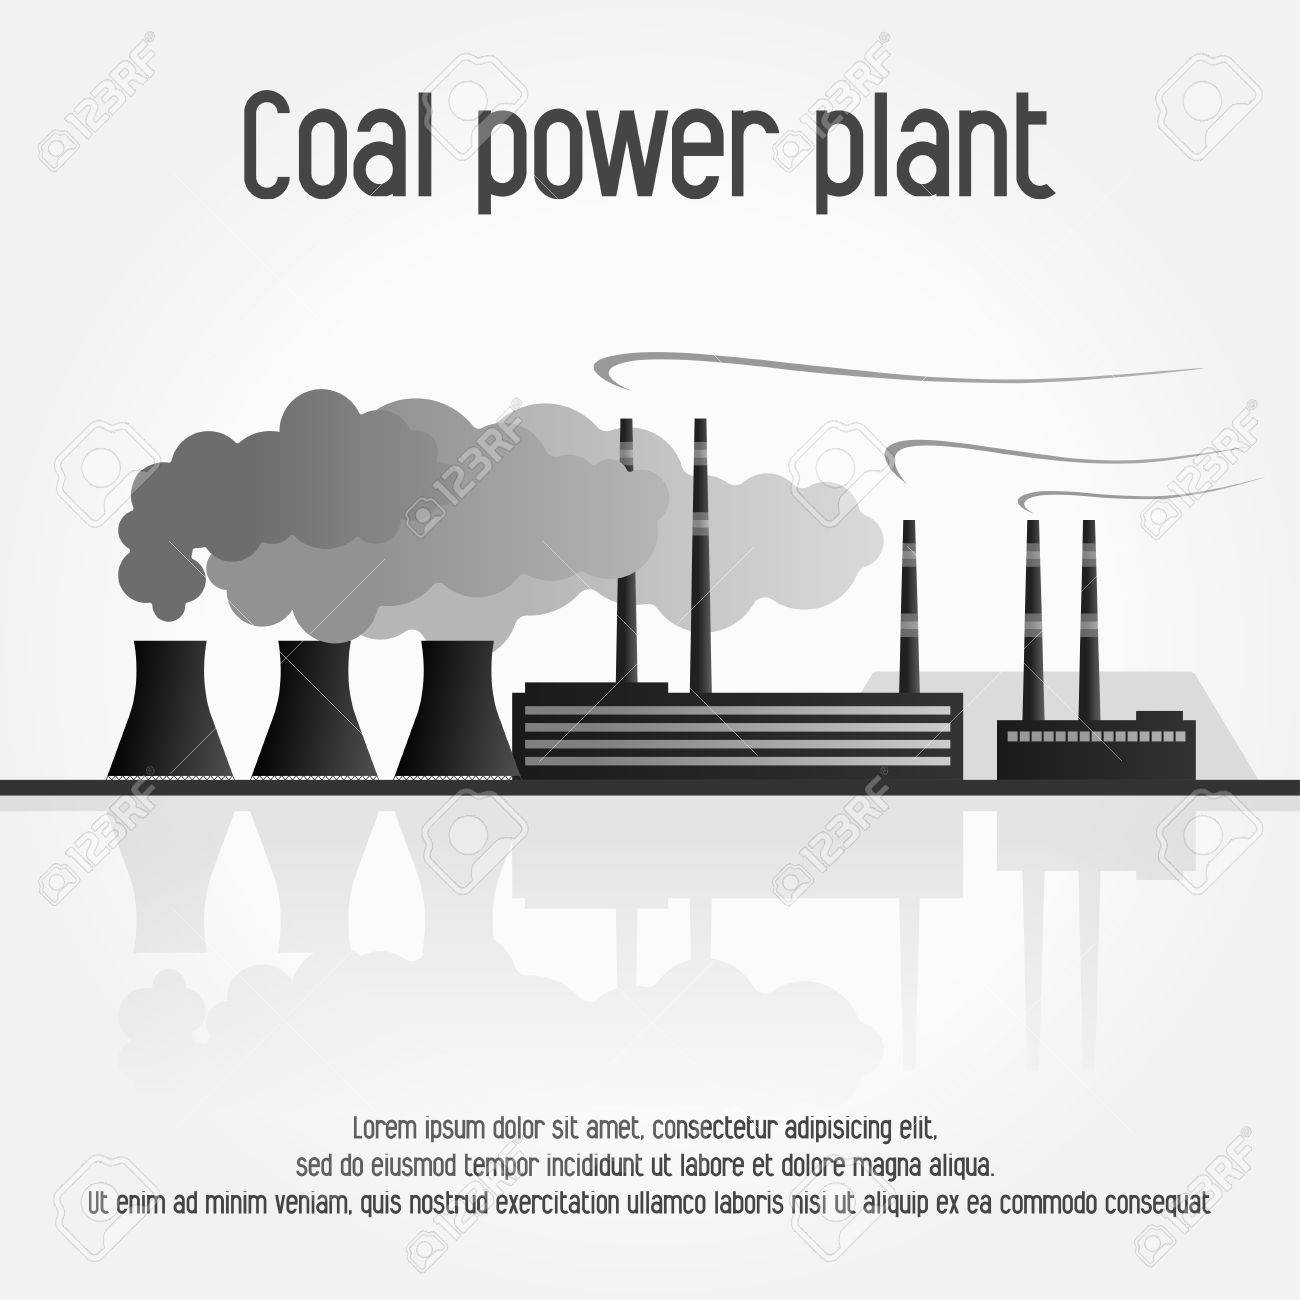 Coal Power Plant Silhouette Vector Illustration On White Backgound Royalty Free Cliparts Vectors And Stock Illustration Image 51687003